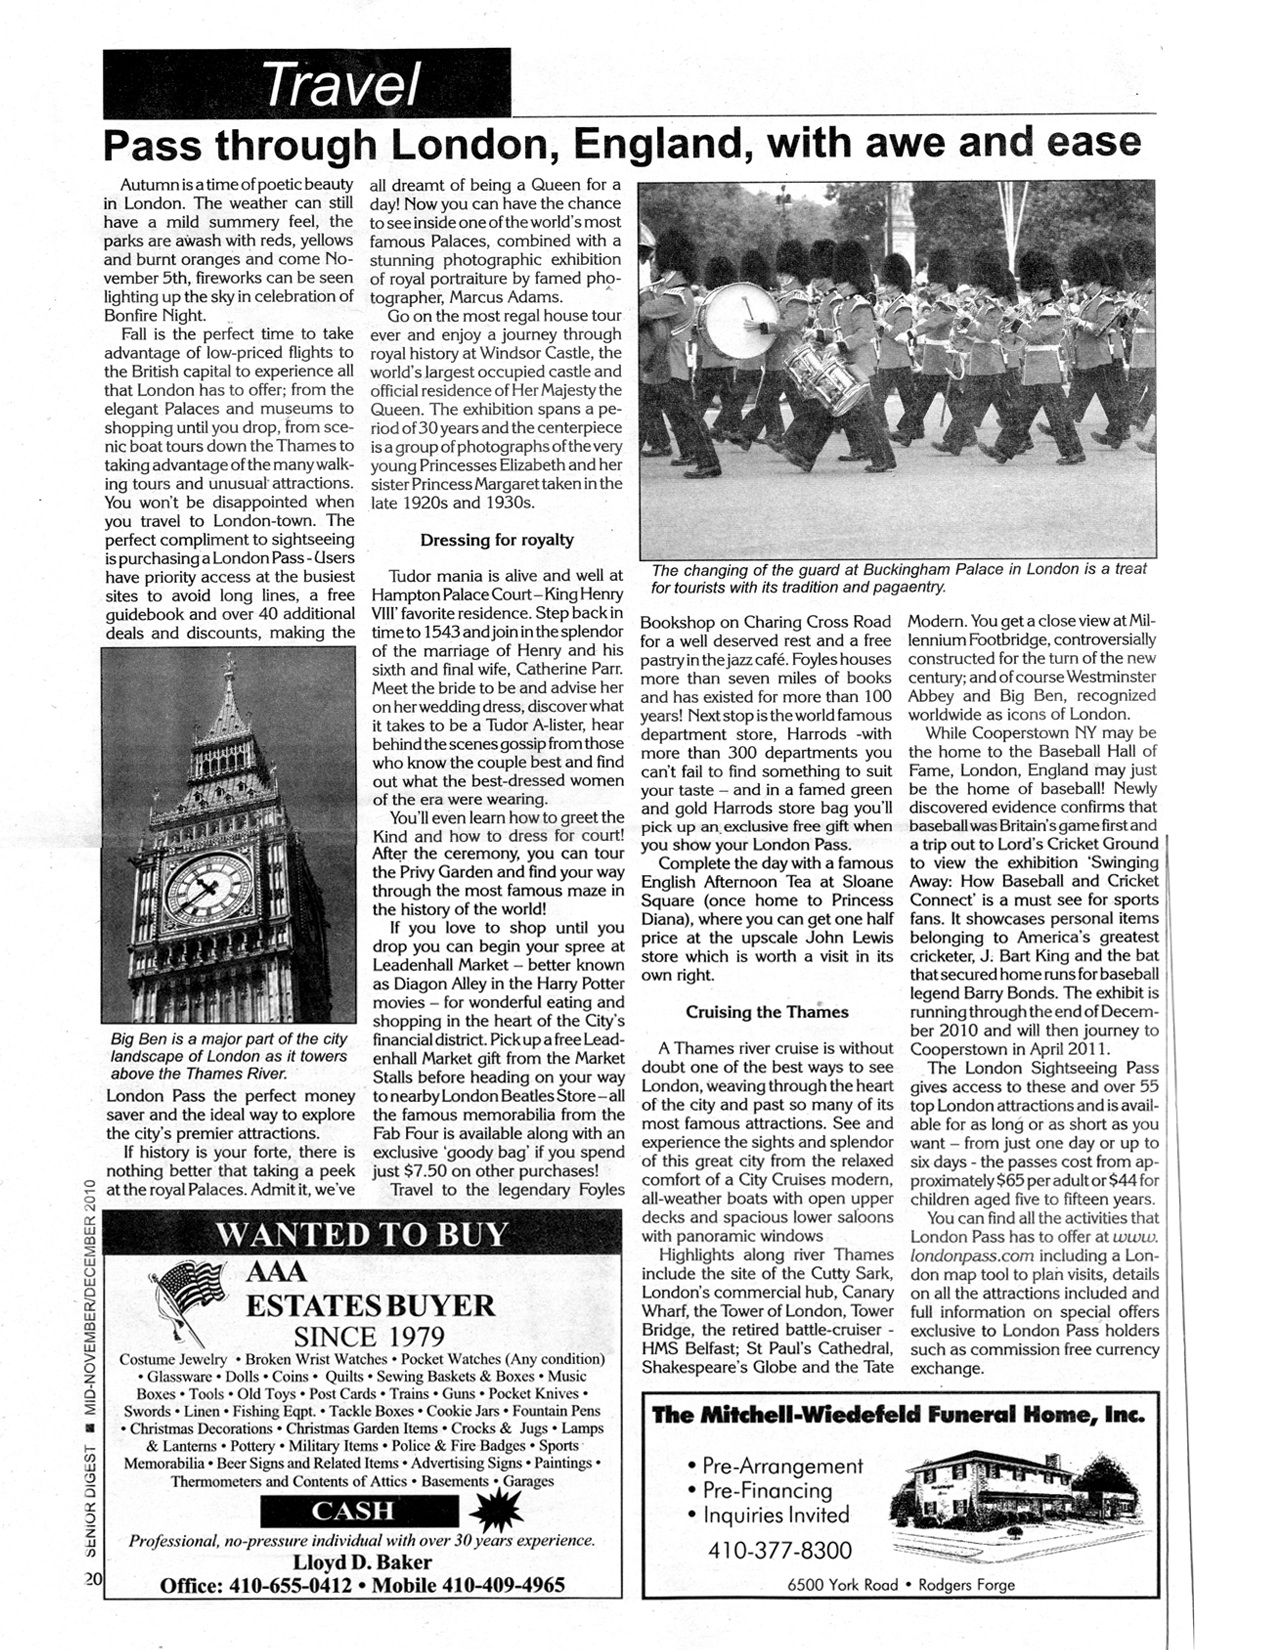 Senior_Digest_London_Pass_travel_article.jpg